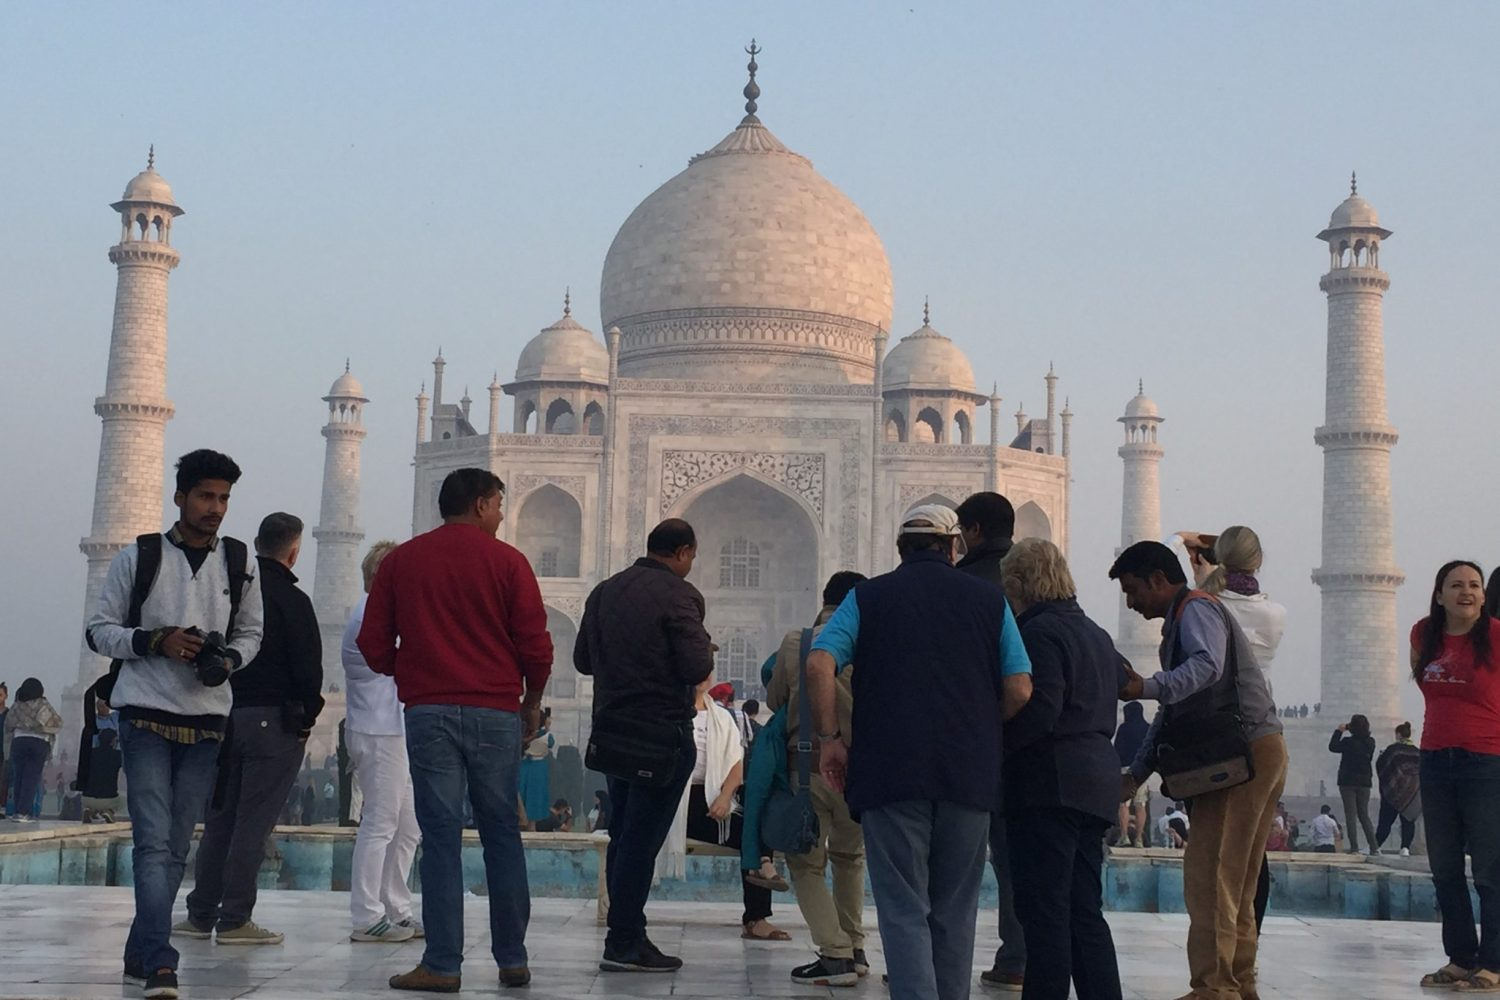 Taj Mahal Day Tour at Diana Seat